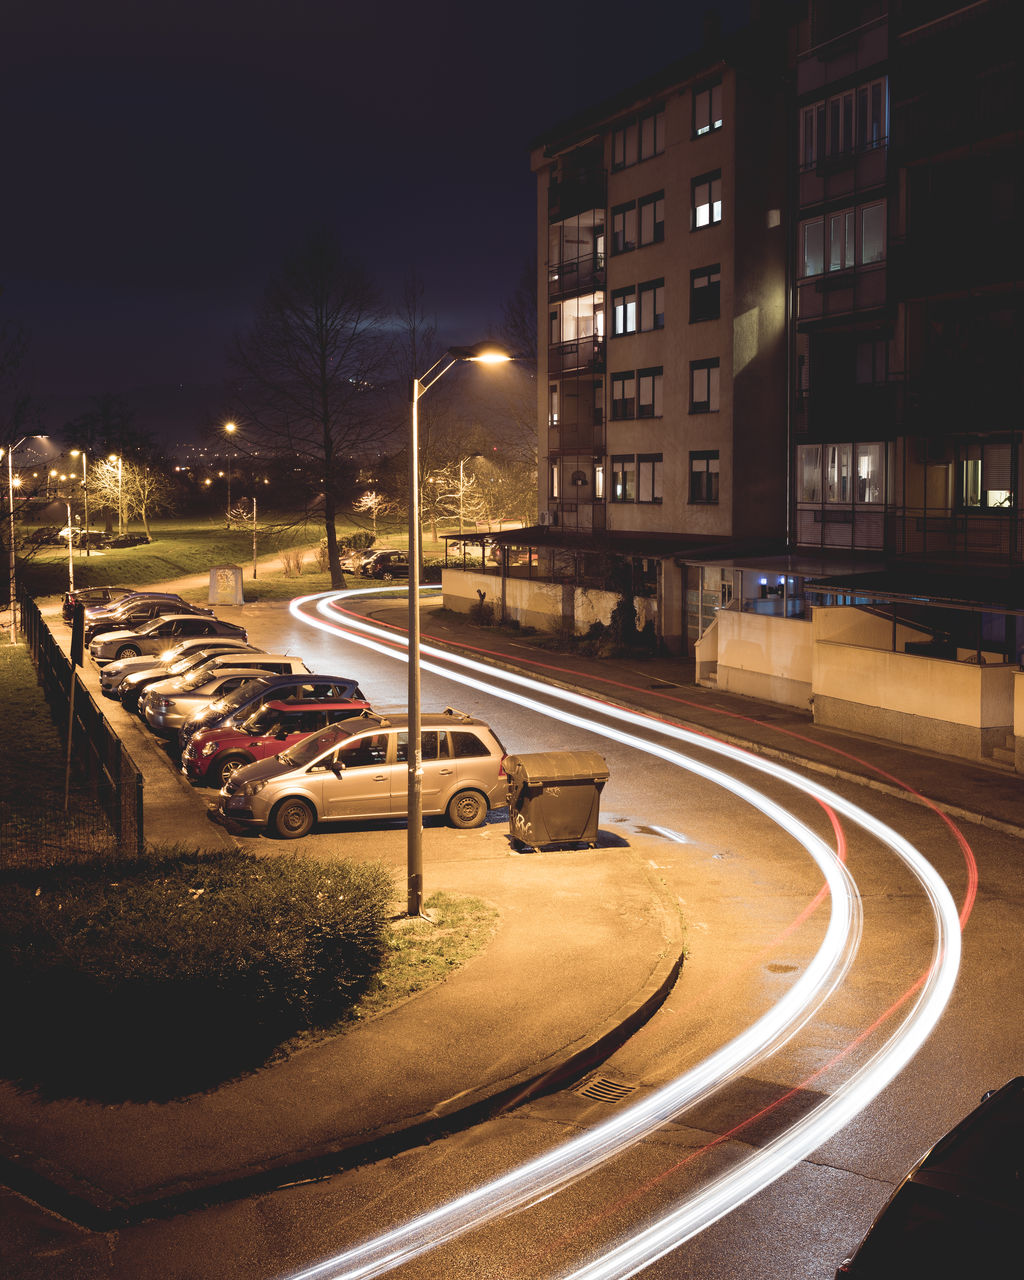 transportation, city, night, architecture, street, road, building exterior, illuminated, mode of transportation, motor vehicle, car, built structure, land vehicle, street light, motion, no people, speed, nature, curve, building, outdoors